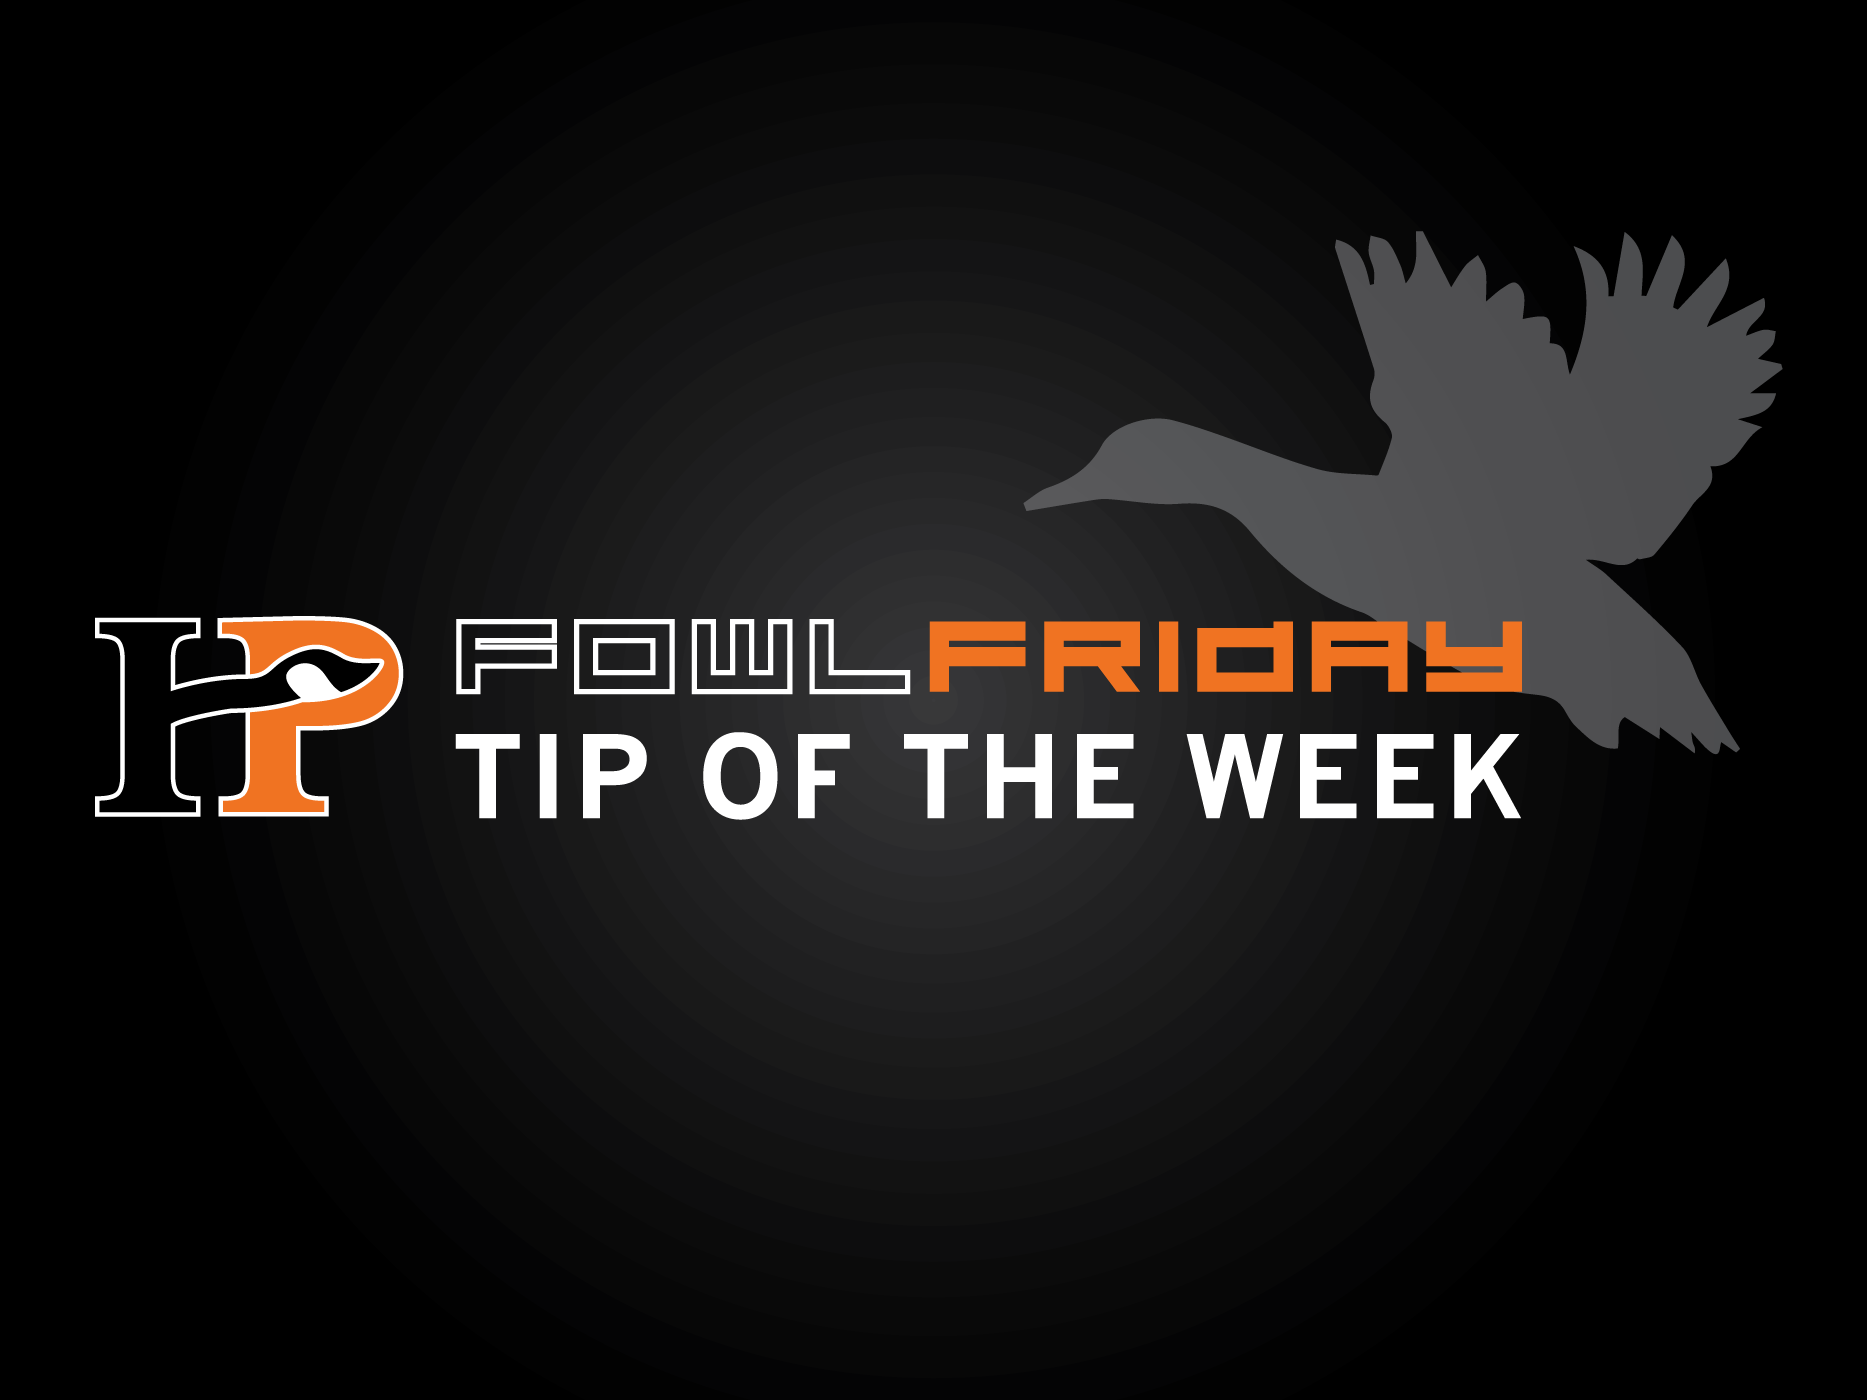 Fowl Friday Tip of the Week: Silhouette Decoys